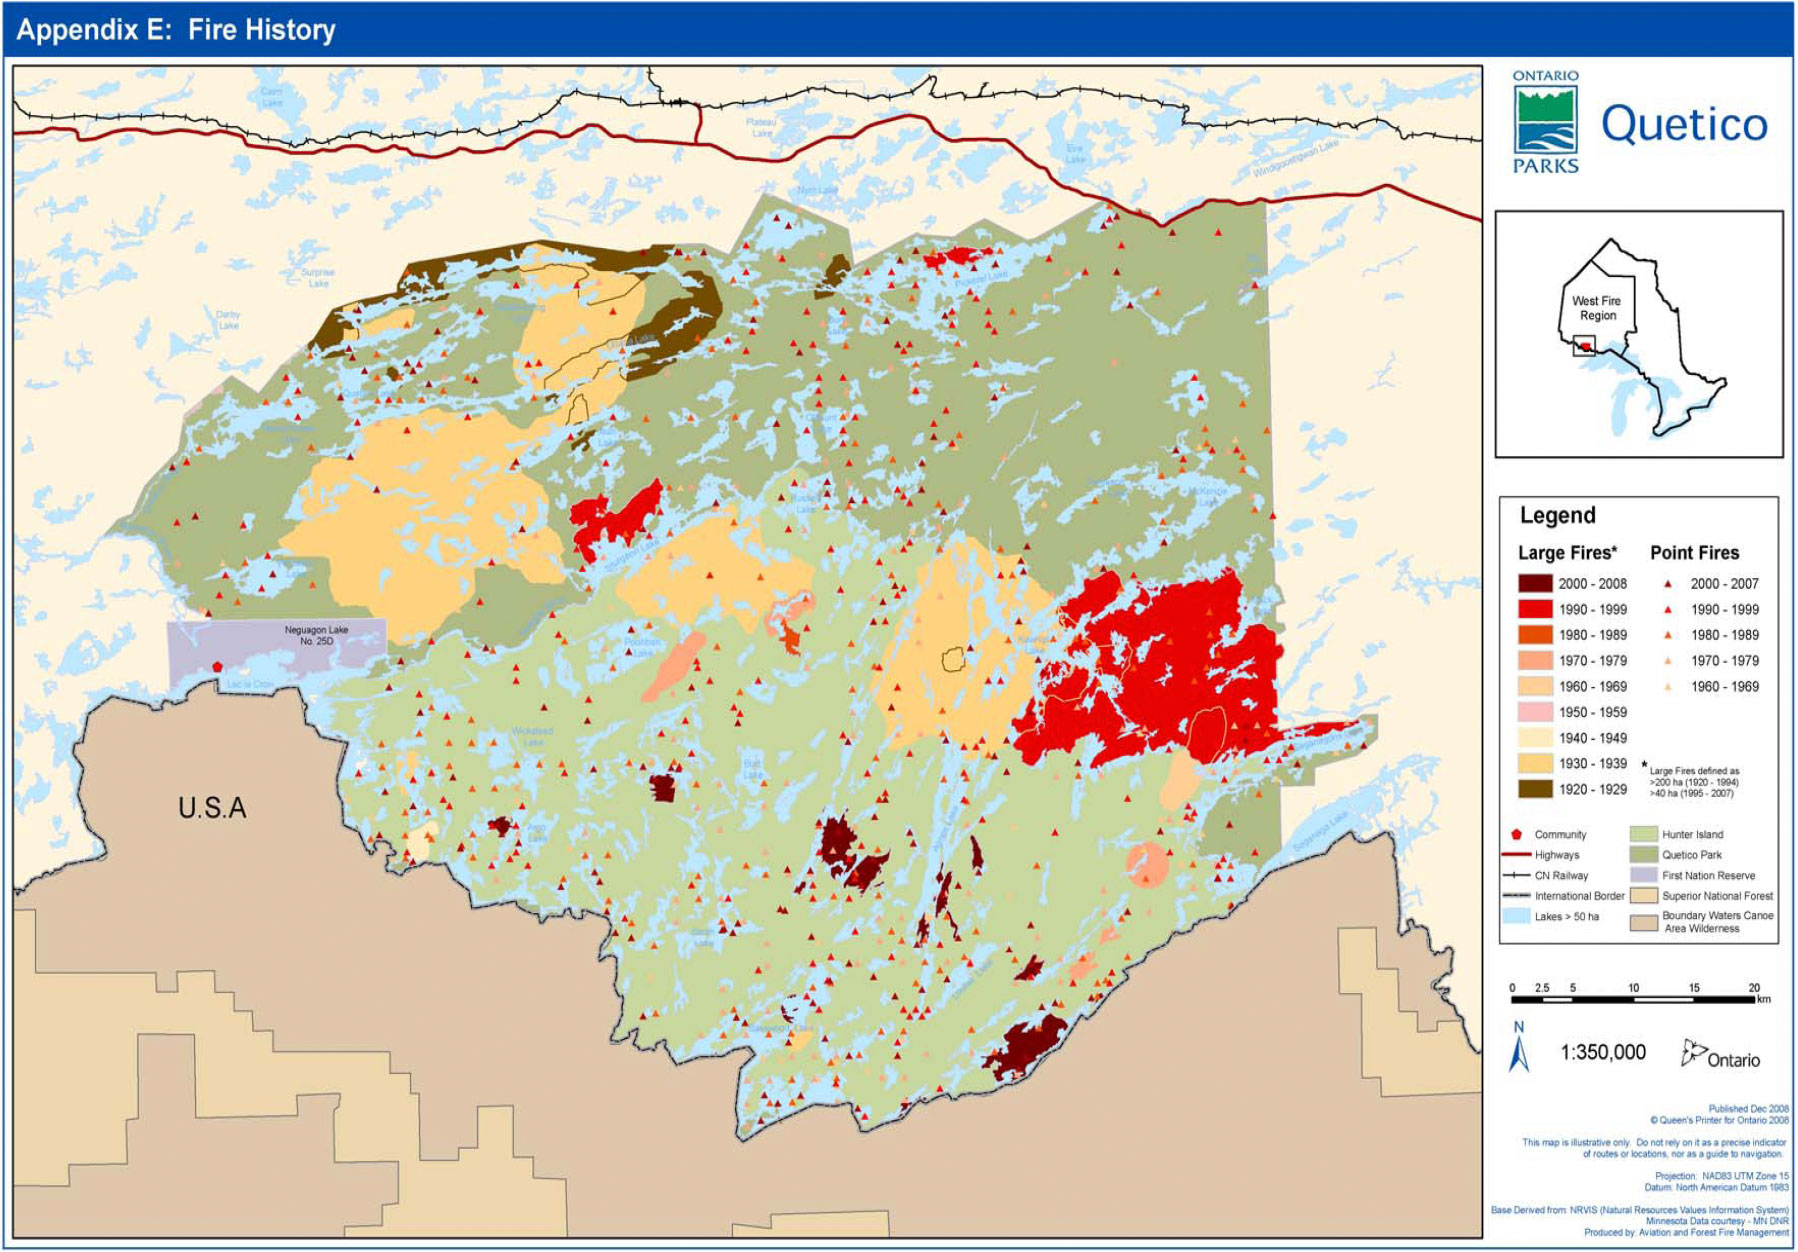 Quetico Fire History Map on